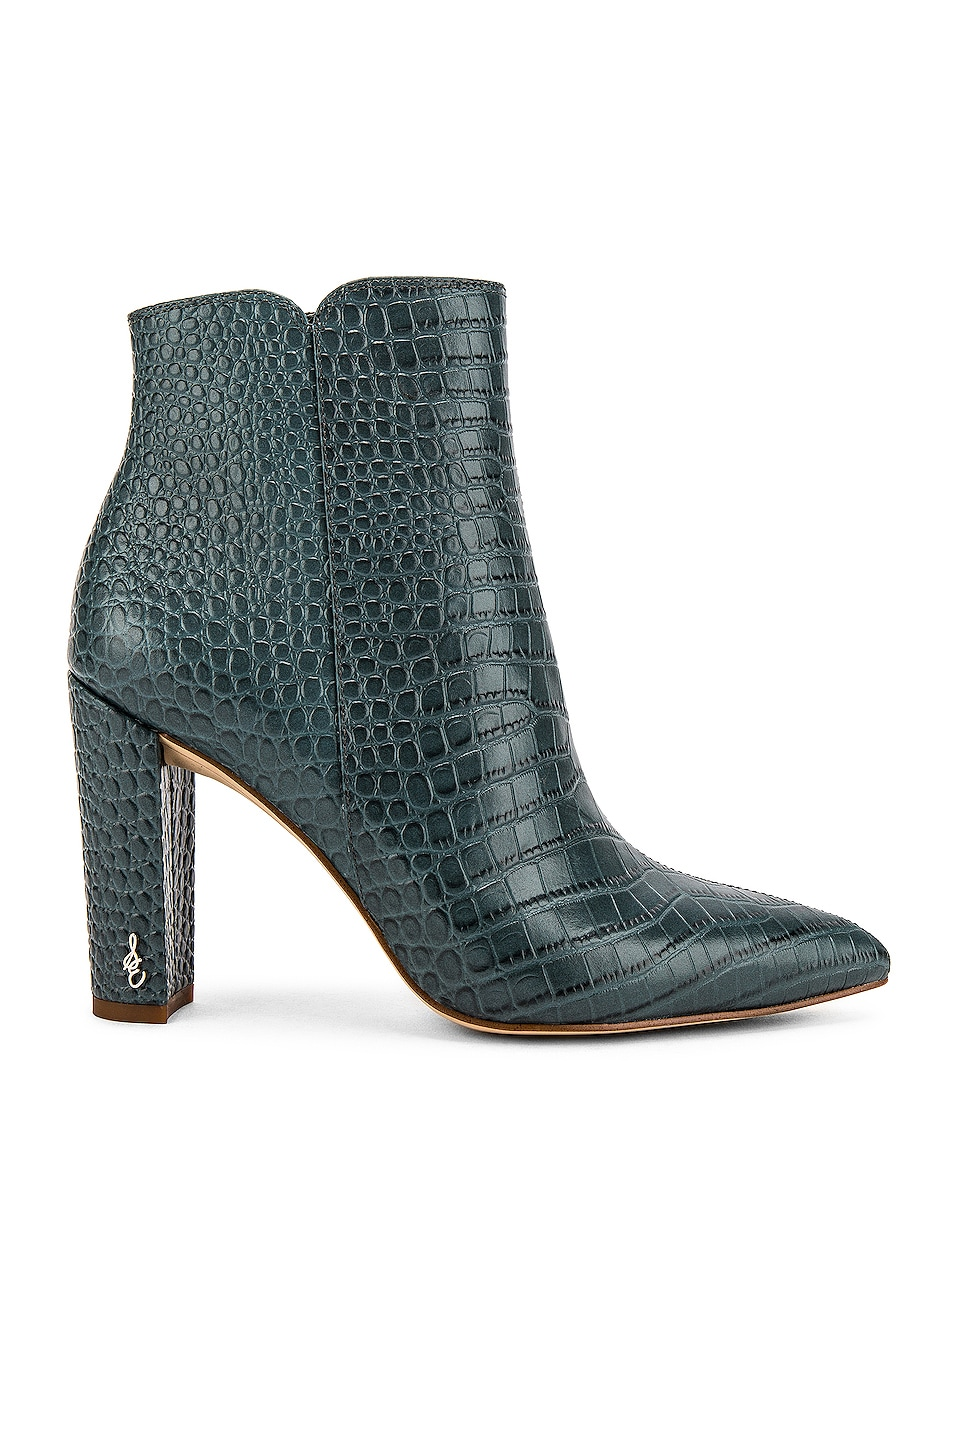 Sam Edelman Raelle 2 Bootie in Grey Iris Croco